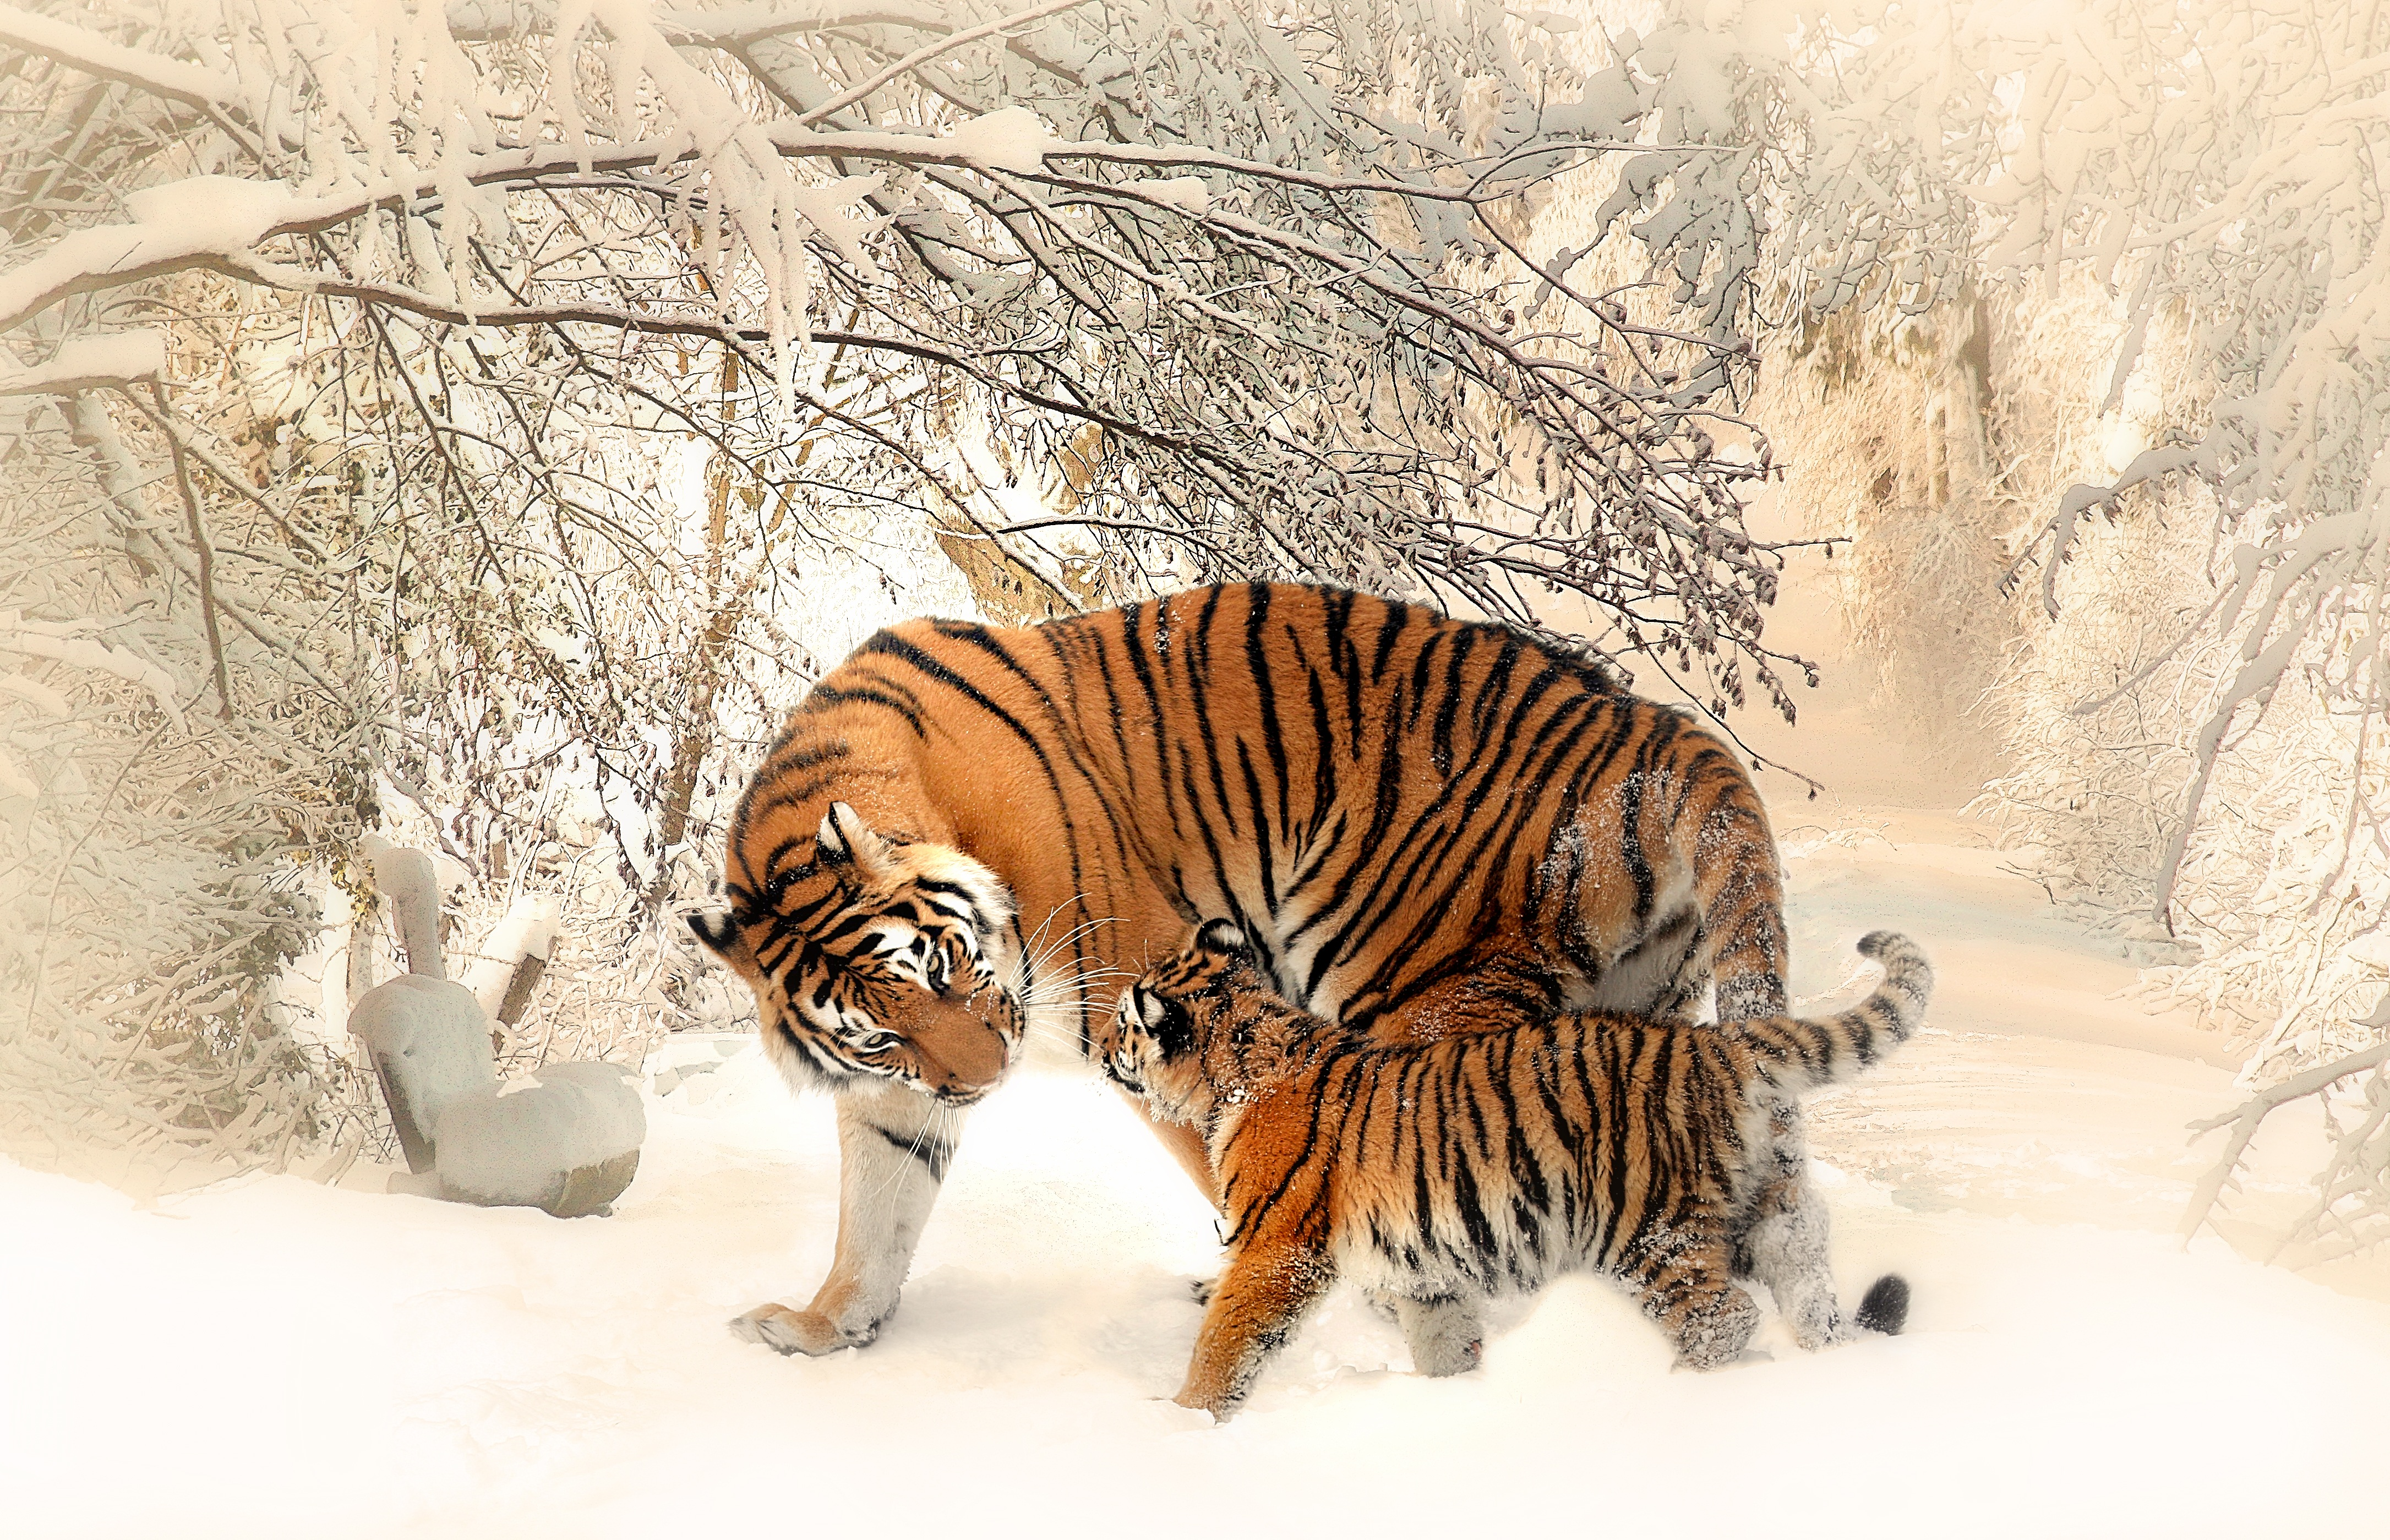 tiger-withBabyInSnow